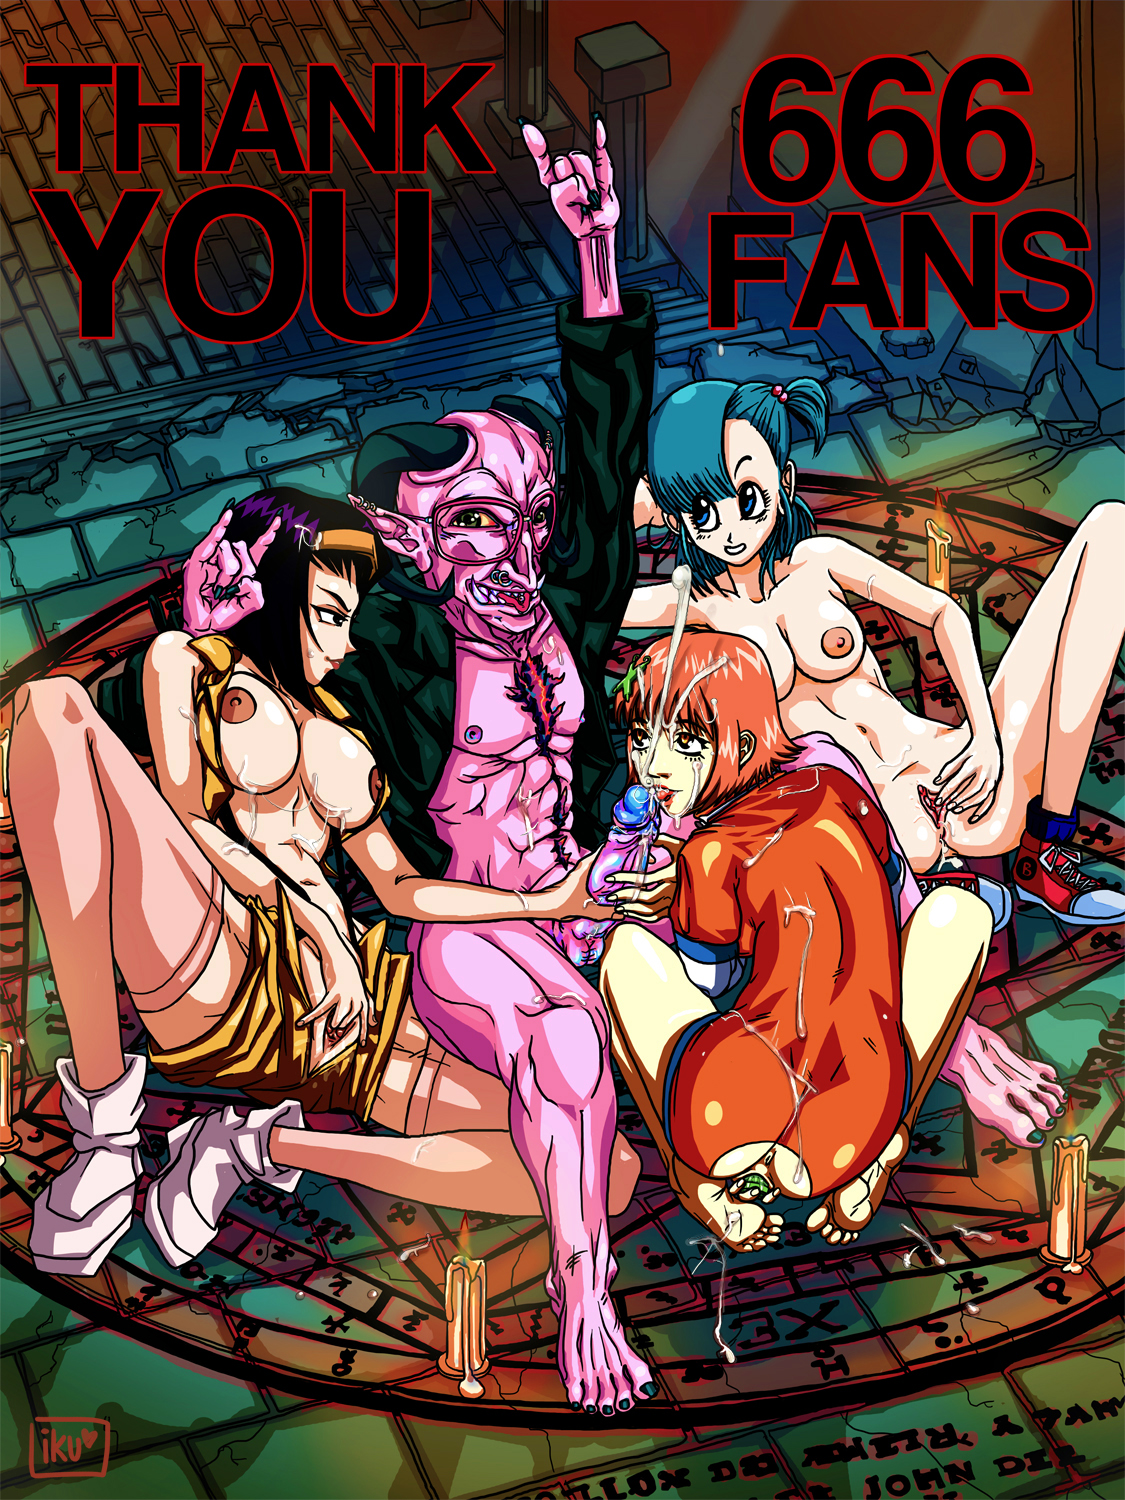 Thank You 666 Fans!